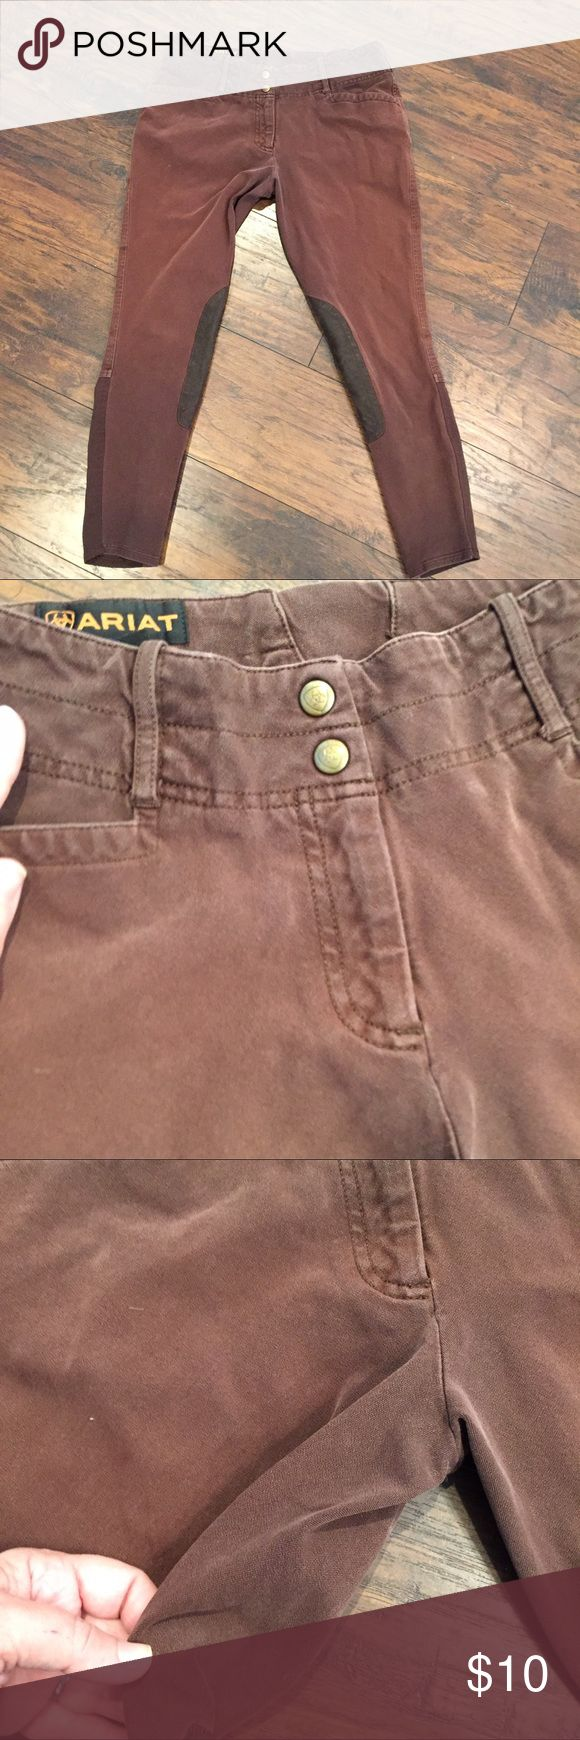 Ariat Riding Breeches Adorable riding pants. They have definitely been worn by someone who has ridden but that makes them all the more desirable!  These come with the knee patches and are already distressed.  These would look great with a tucked in Blouse or a Tunic and a pair of boots or you can wear them to ride in. Ariat Pants Ankle & Cropped